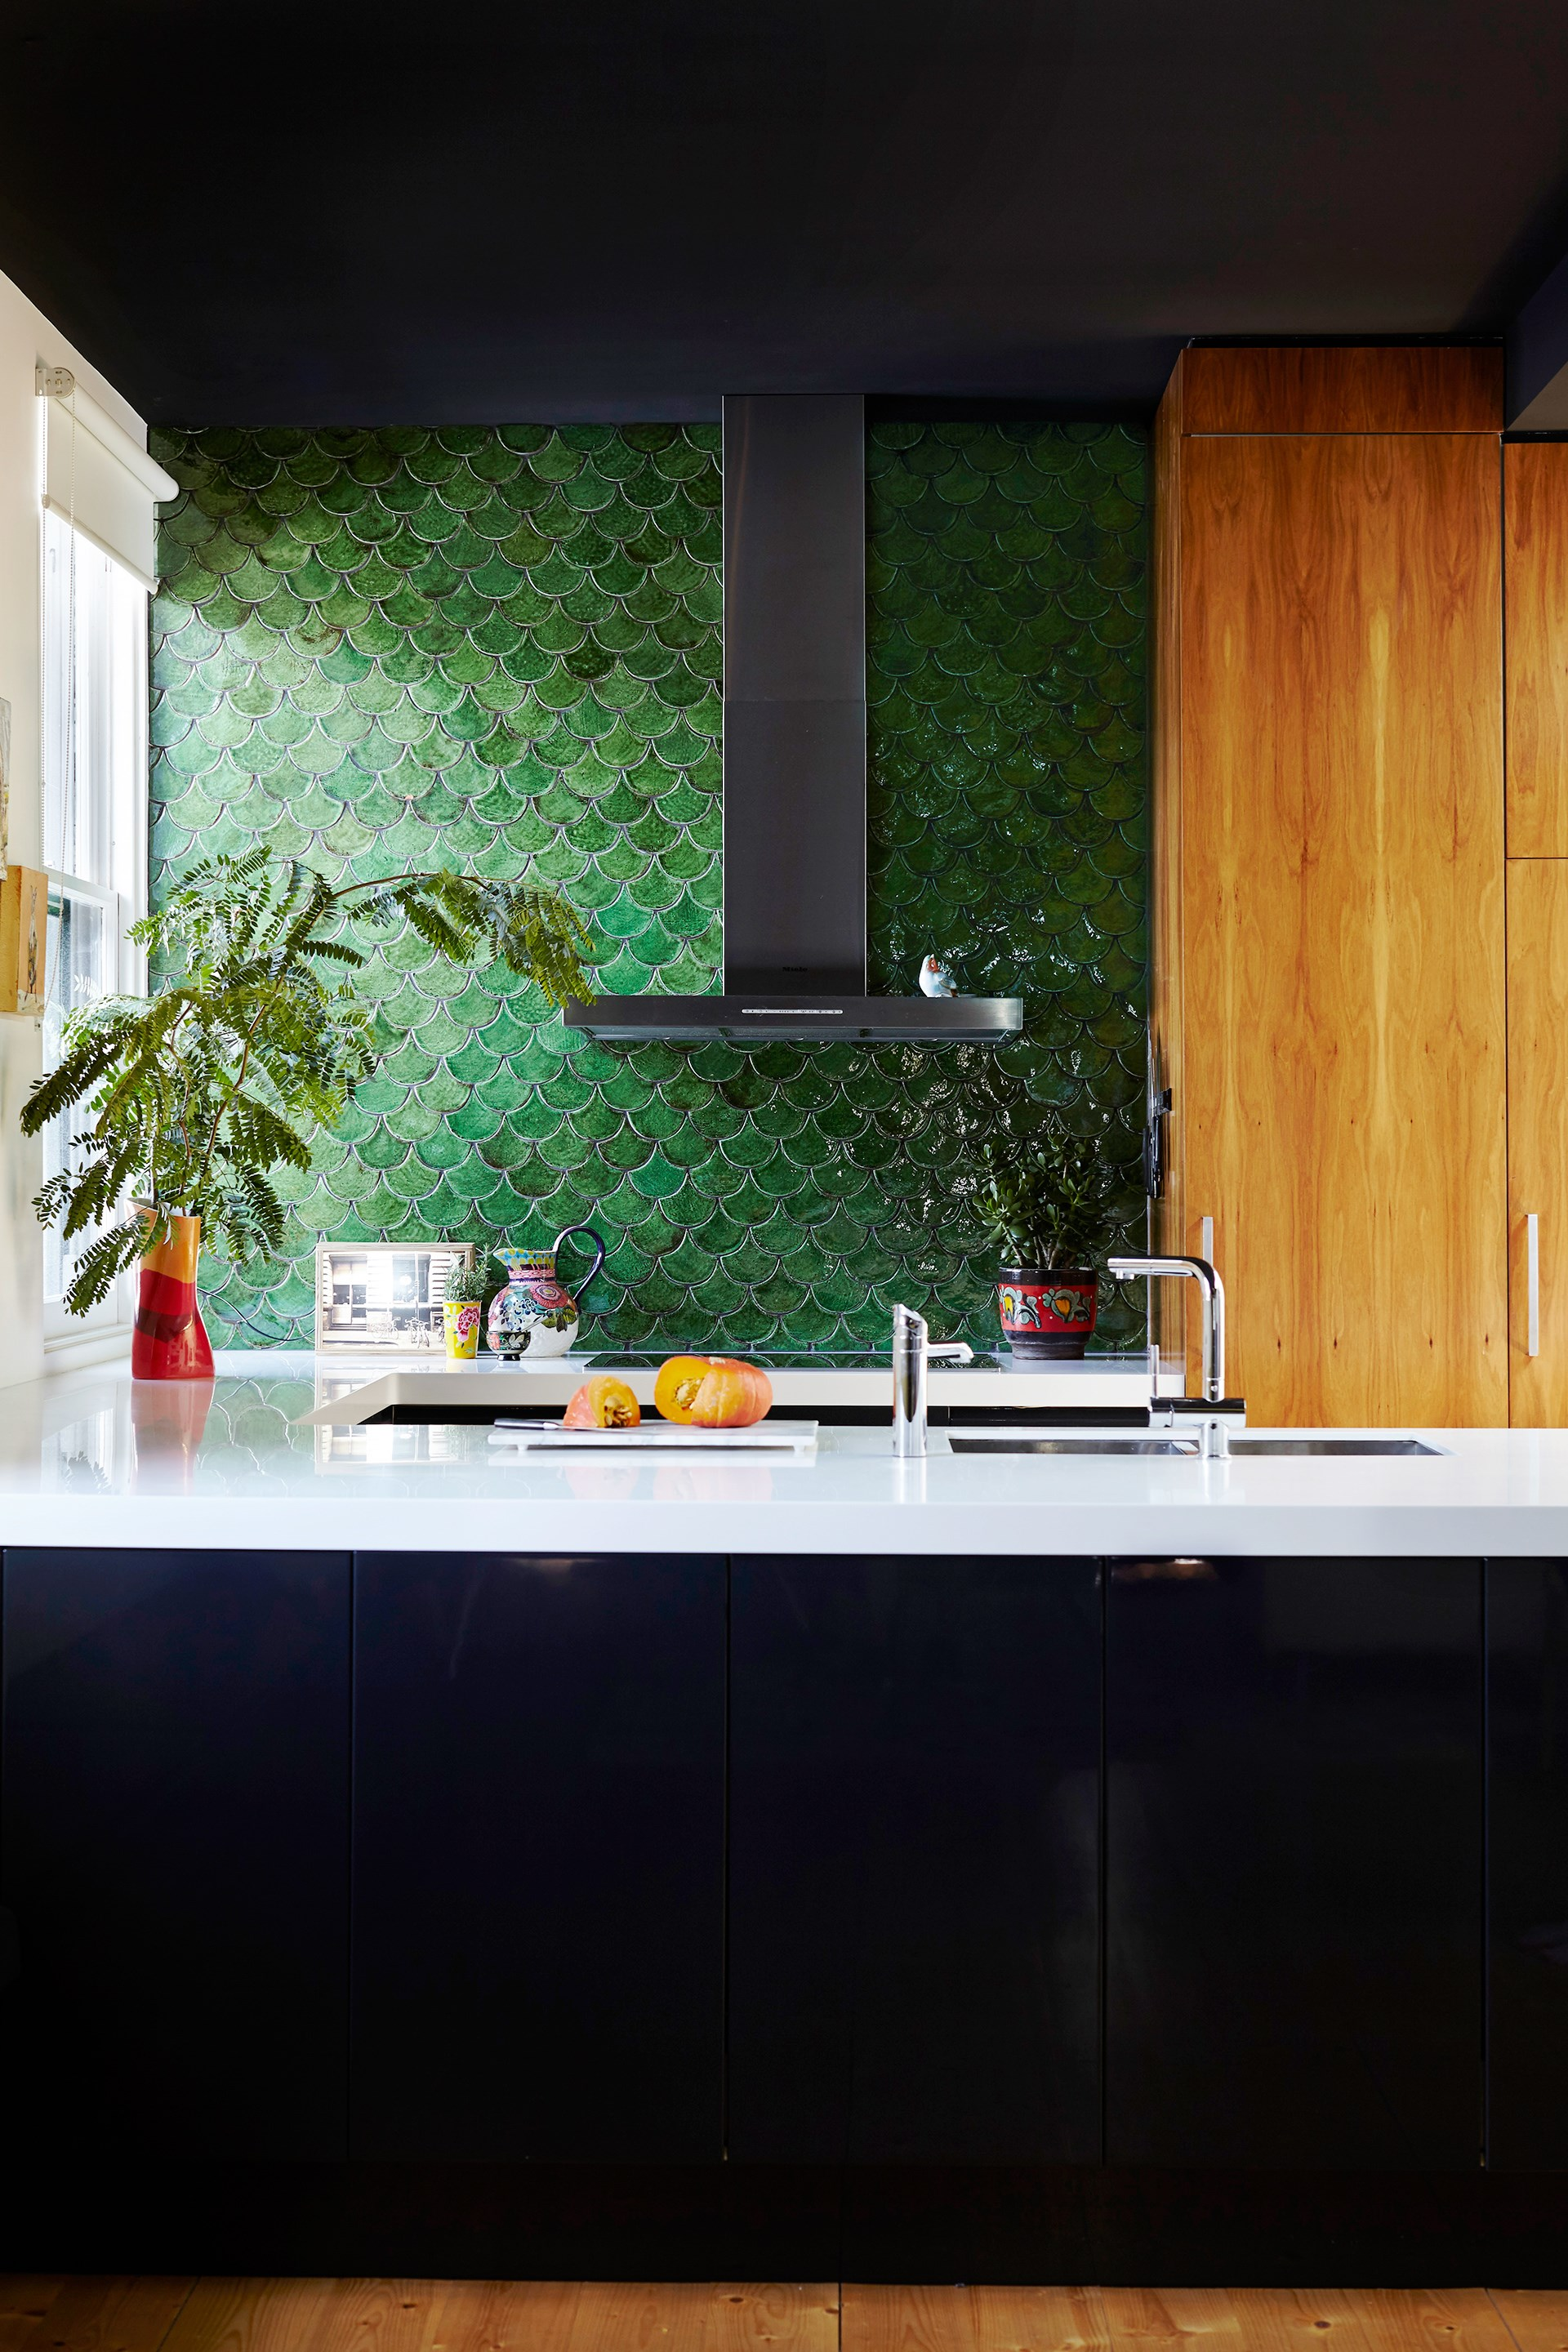 """Olive-green fishscale-patterned tiles add character to the contemporary kitchen in this [Victorian home](http://www.homestolove.com.au/grand-victorian-home-gets-a-colourful-personality-3642 target=""""_blank""""). Photo: Alicia Taylor"""